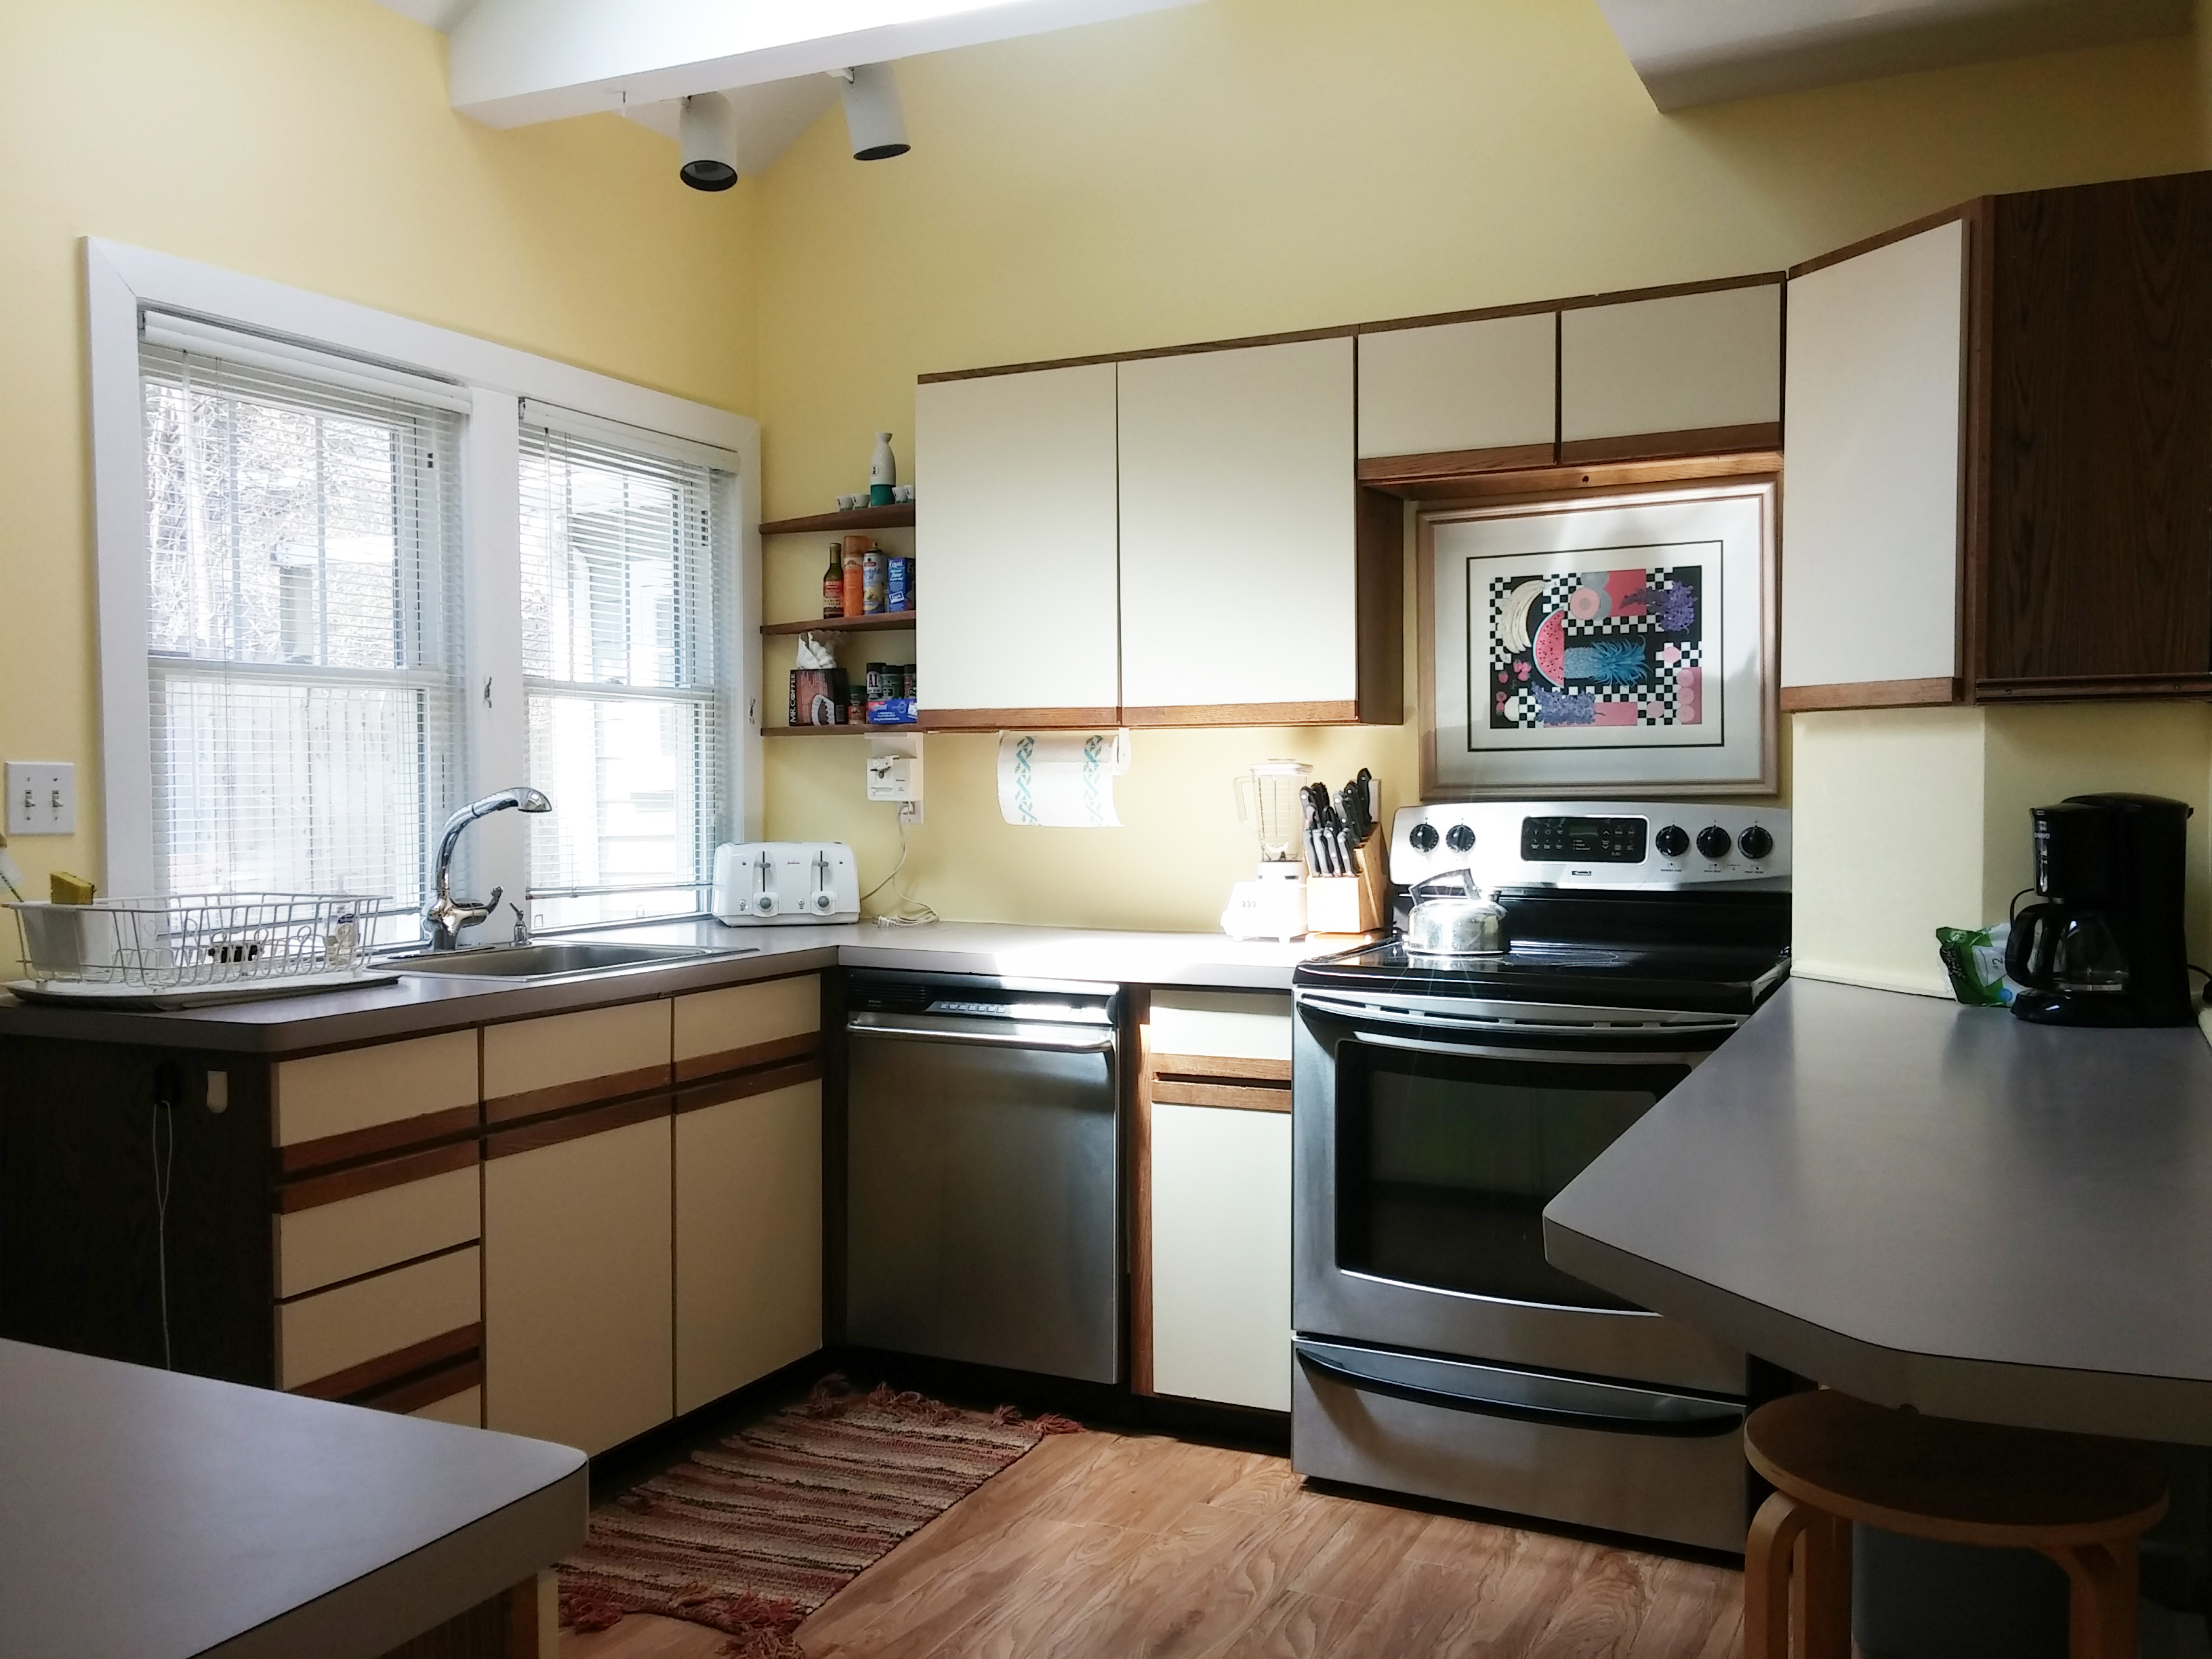 Bright Fully Furnished Kitchen With Dishwasher, Stainless Range,  Refrigerator With Ice Maker, Disposal